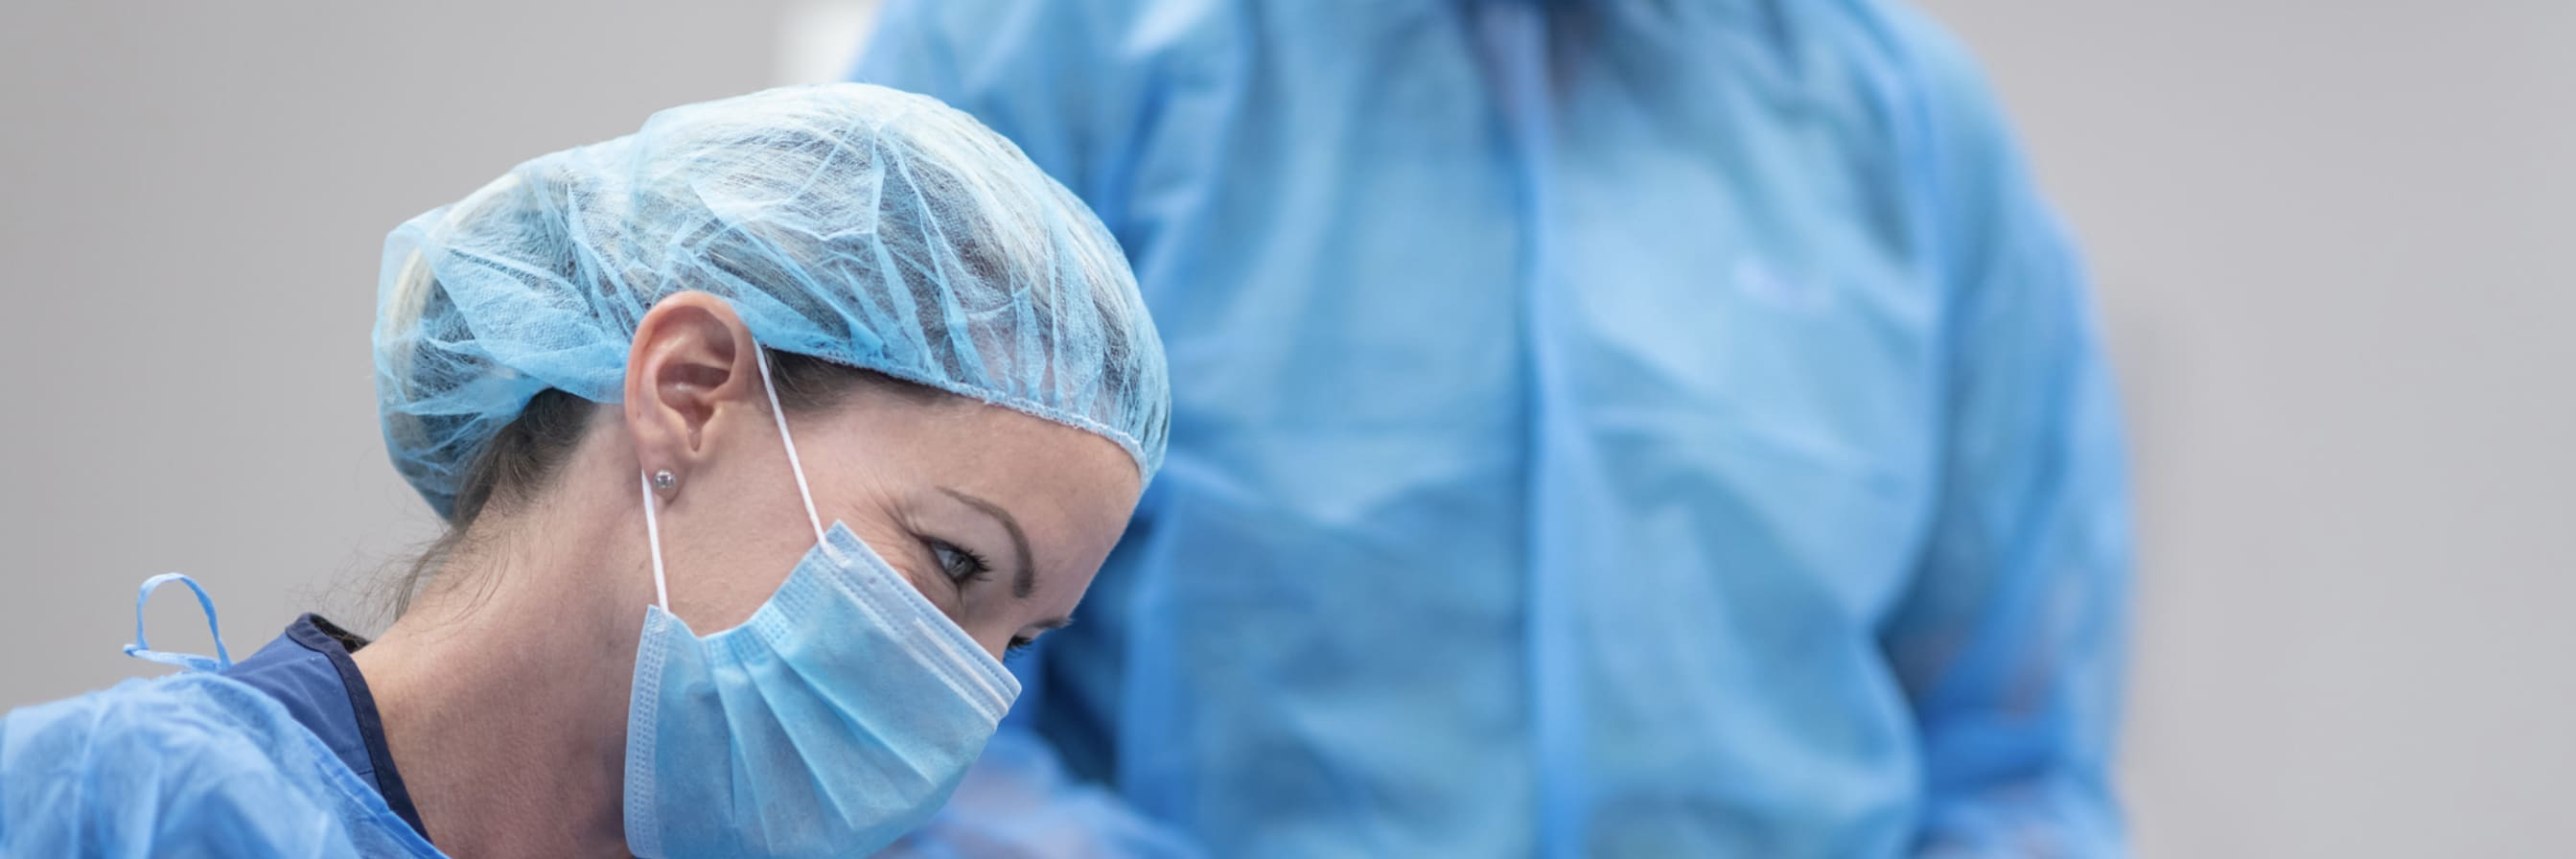 woman in surgical mask, gown and gloves holds patient's hand